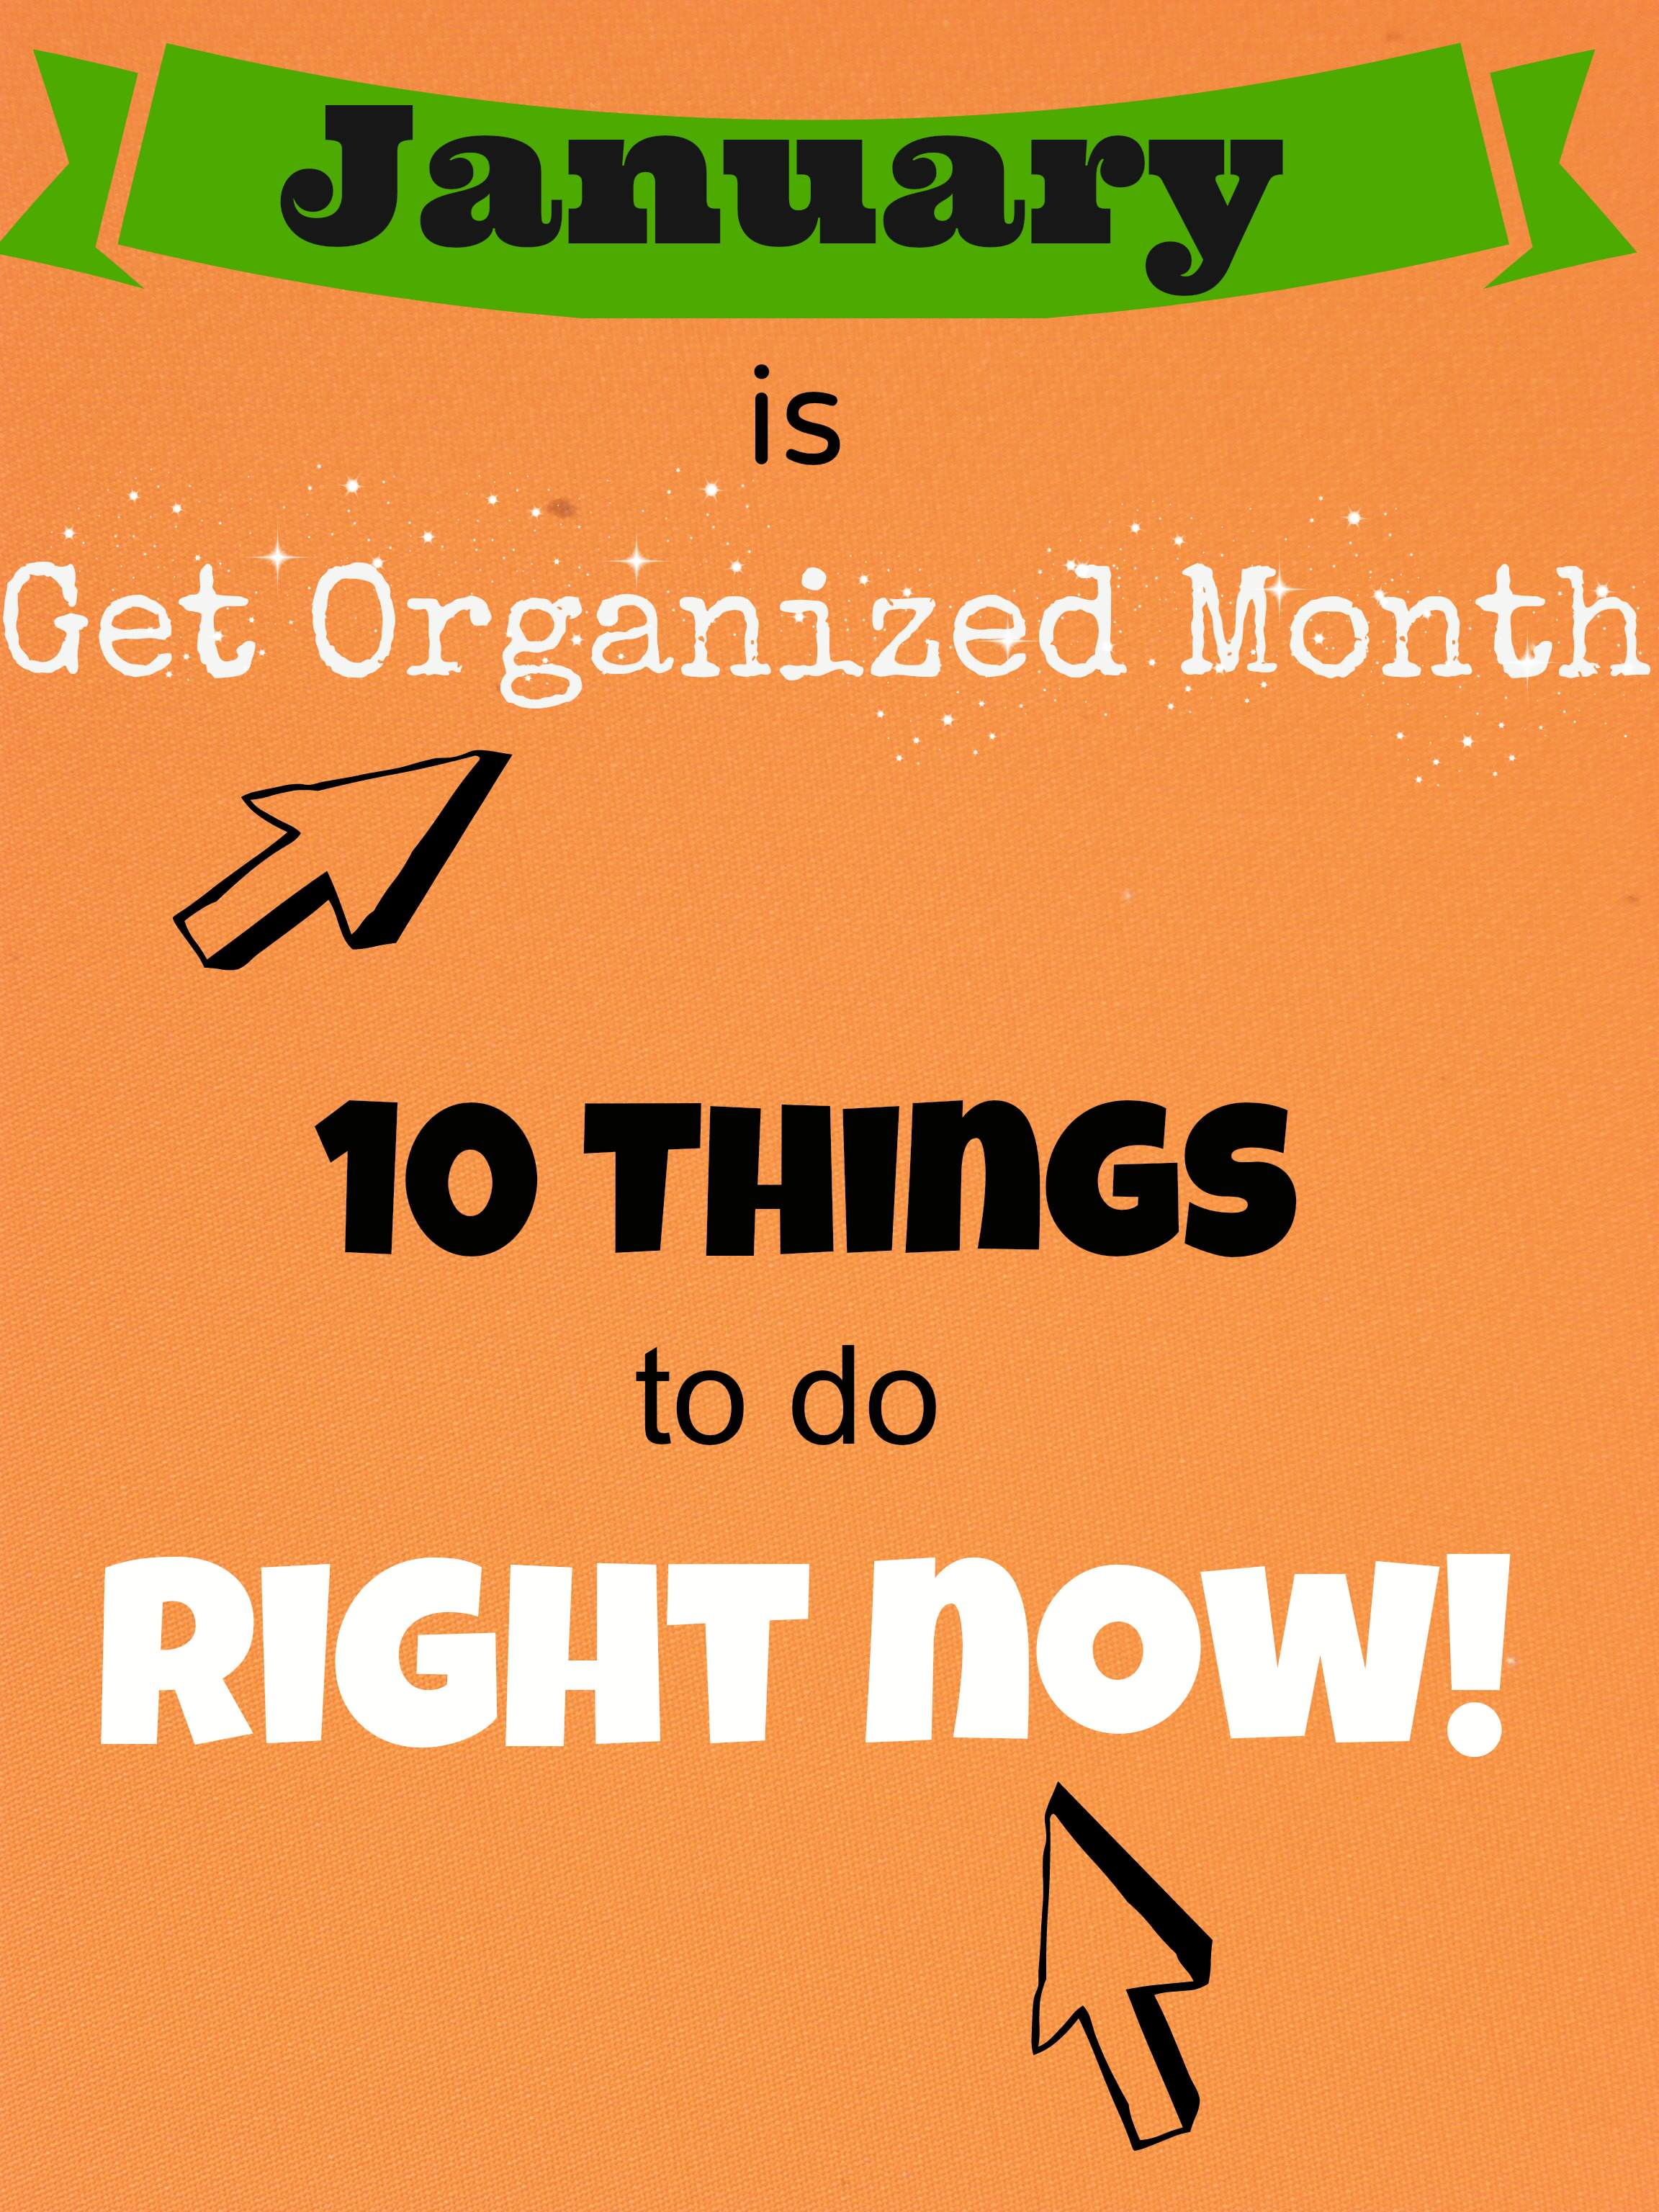 how to get organized at home quick